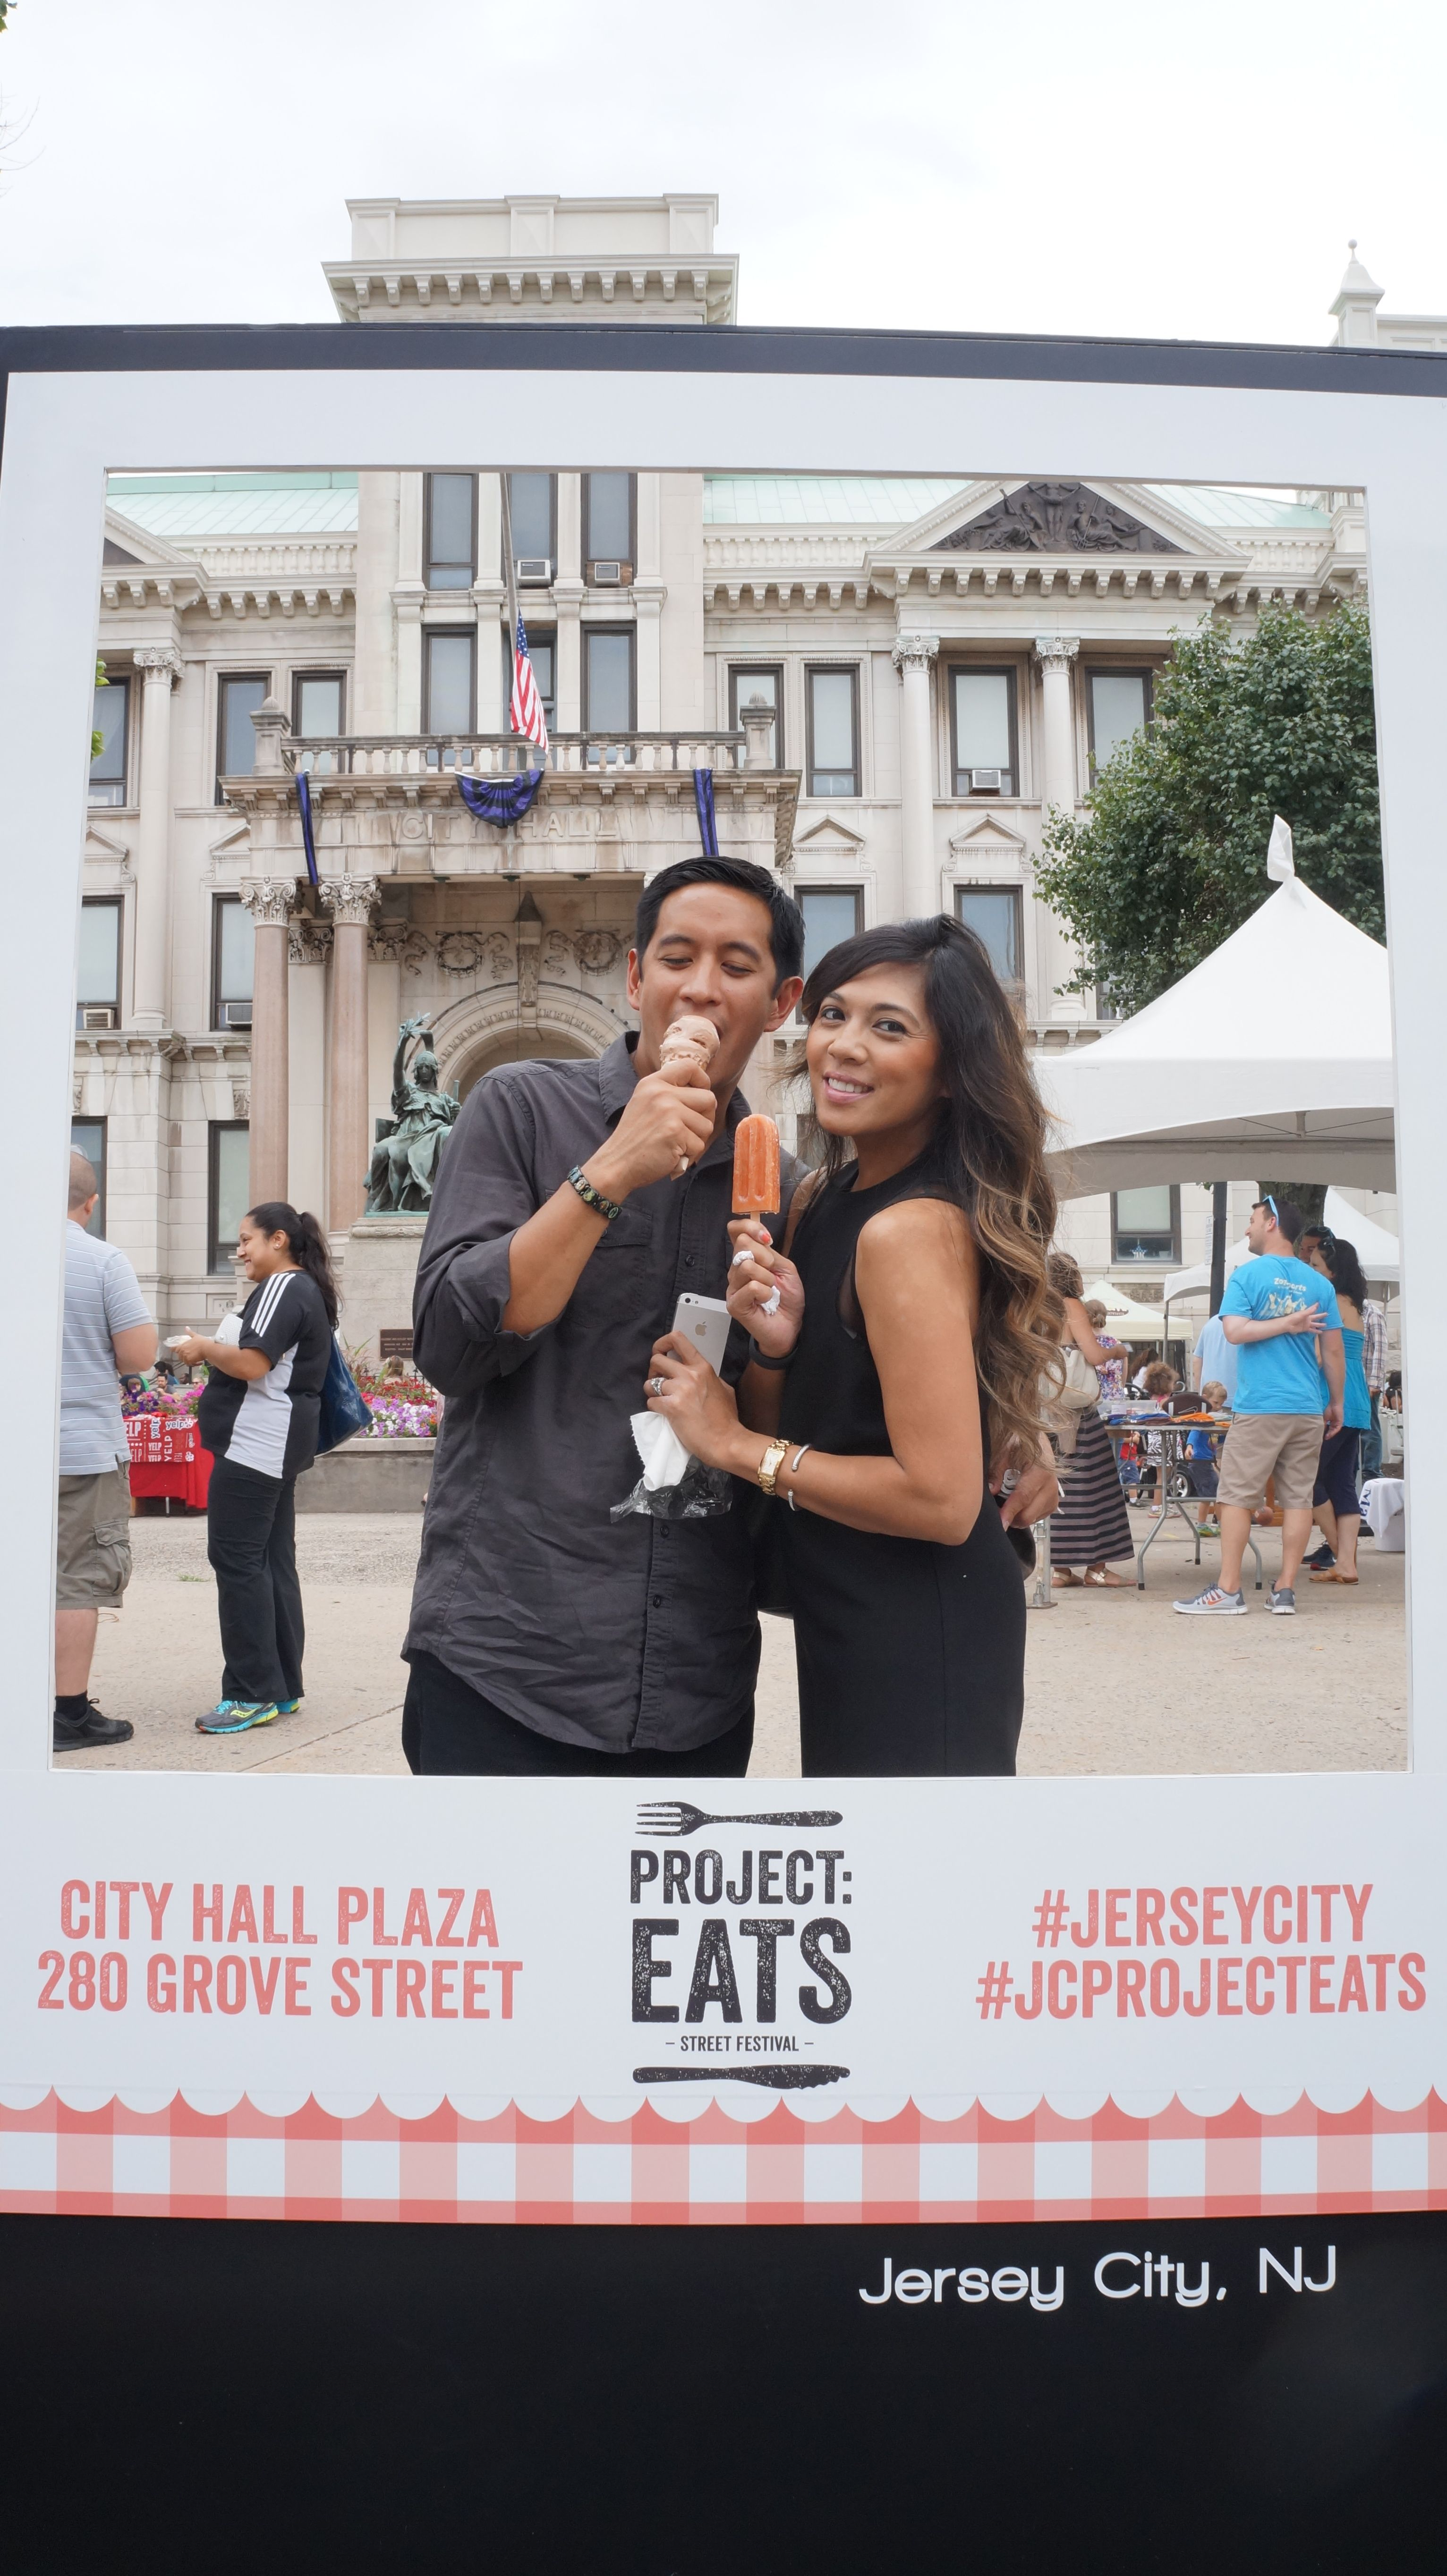 Project: Eats 2014- The Photo Booth